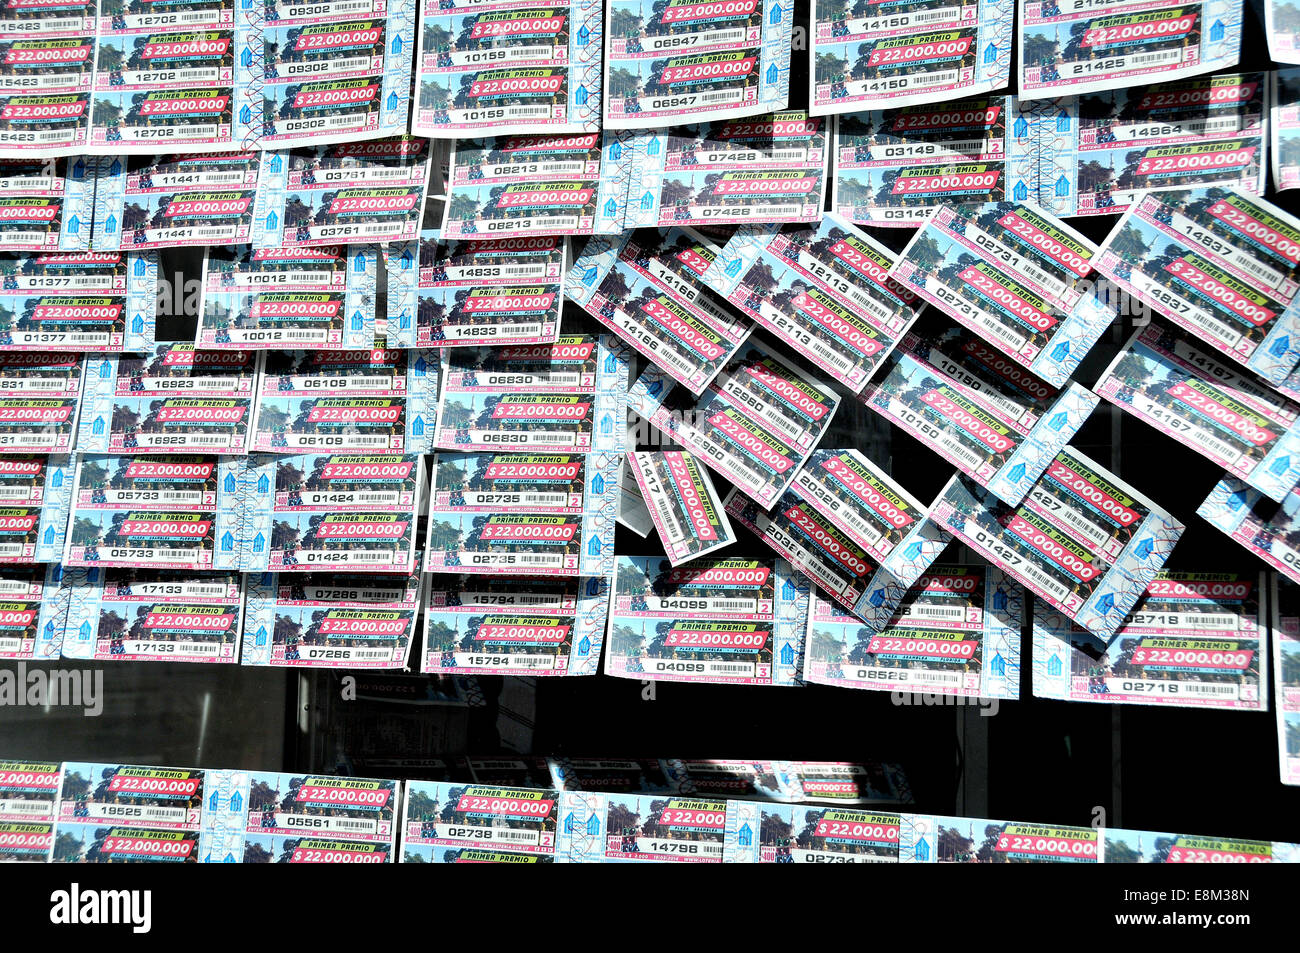 lottery tickets Montevideo Uruguay - Stock Image